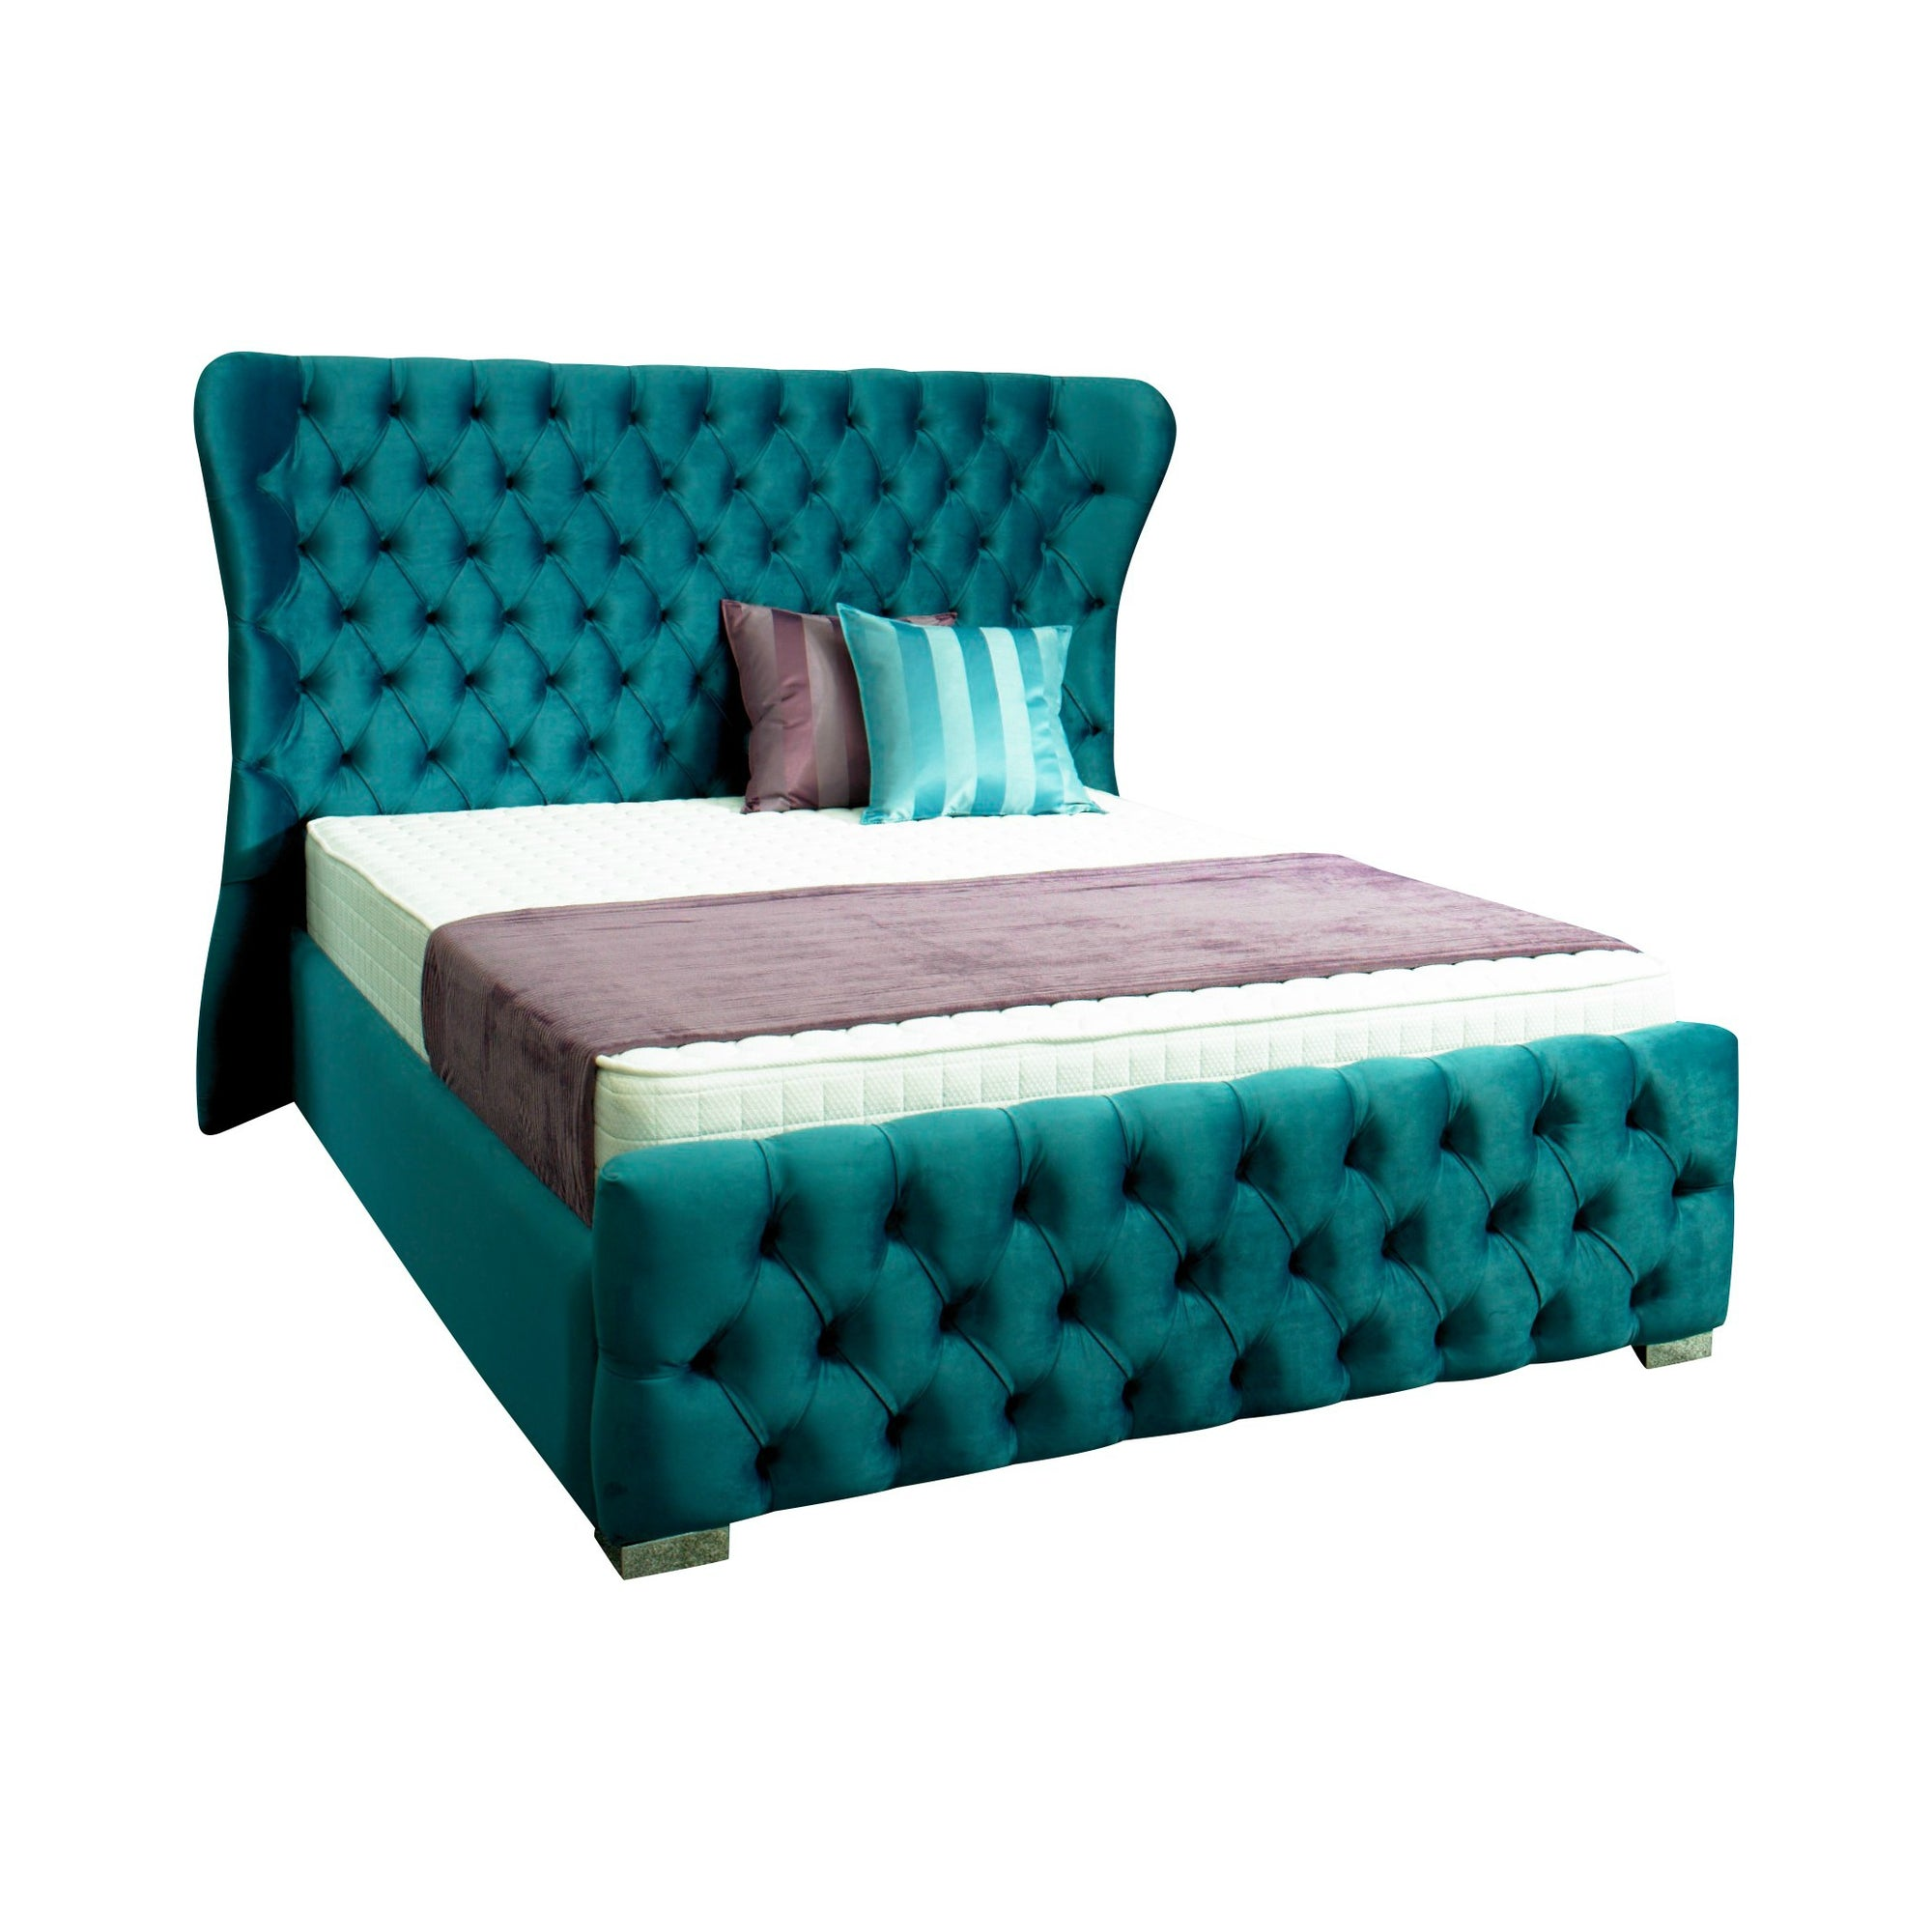 Kendal Chesterfield Bespoke Sleigh Bed Chic Concept